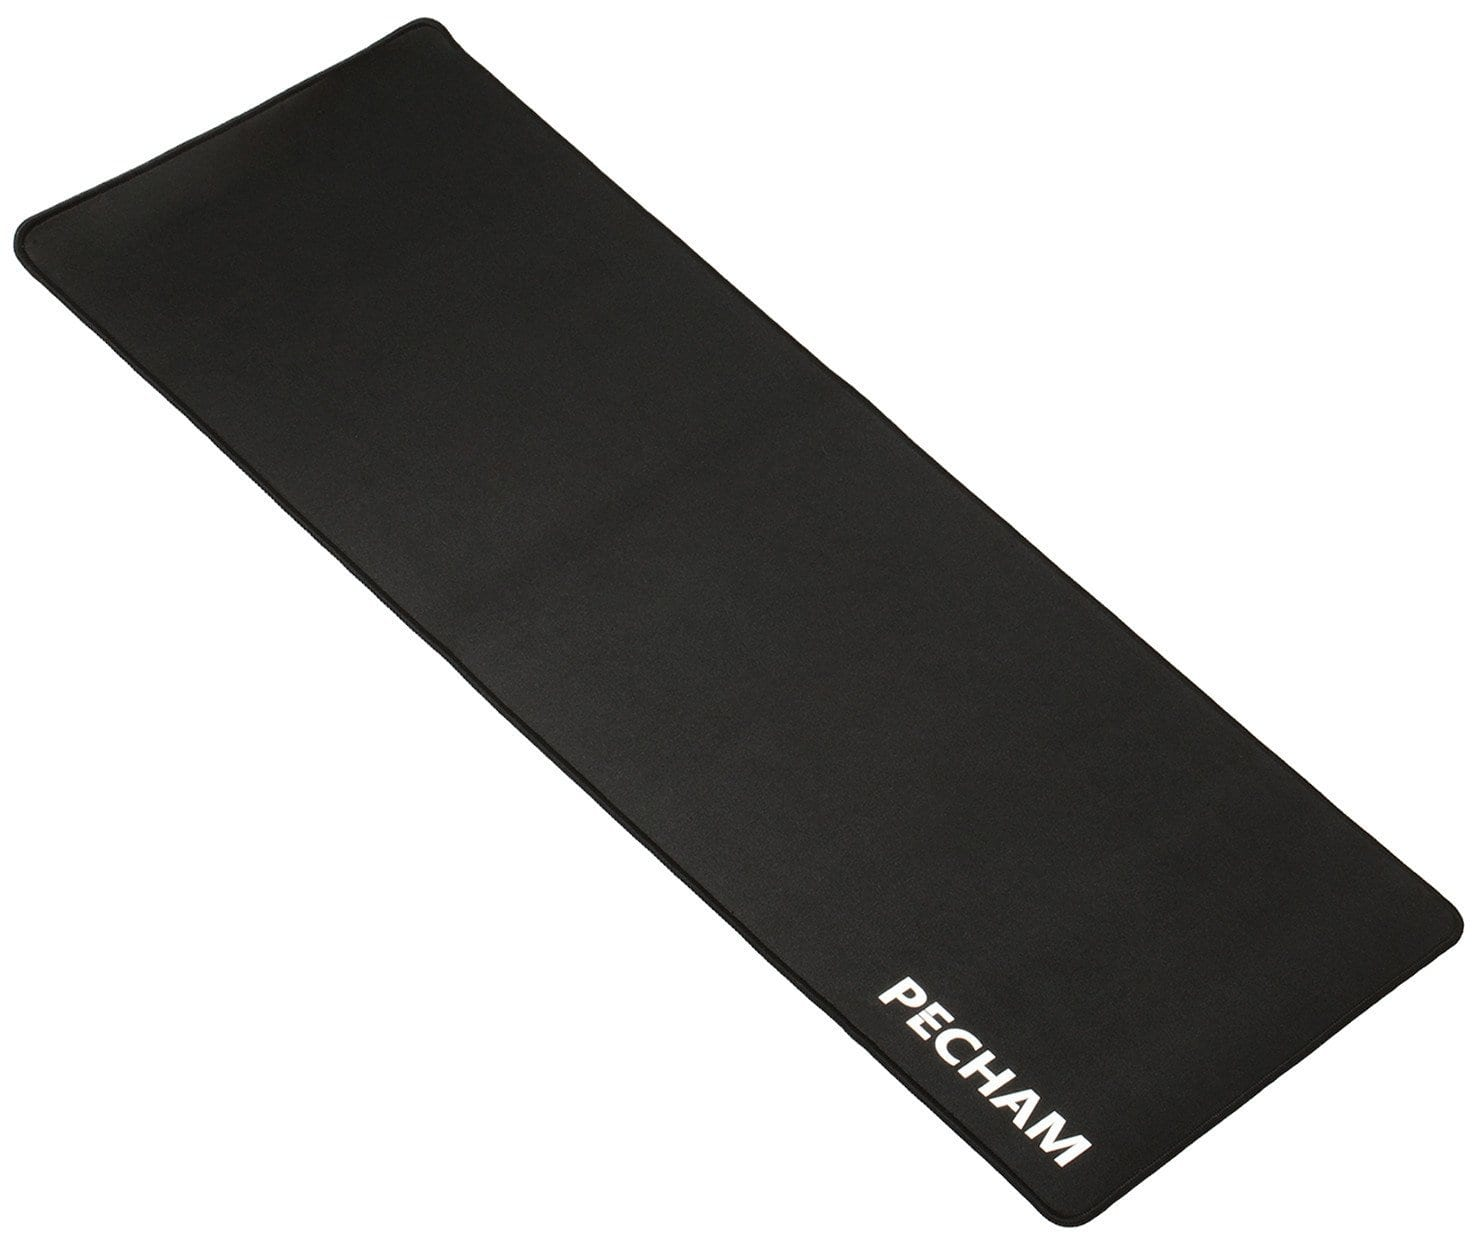 PECHAM Extended Non-Slip Waterproof Rubber Base 3mm Thick Gaming Mouse Pad, XX-Large - Black - $9.99 + FS w/Prime